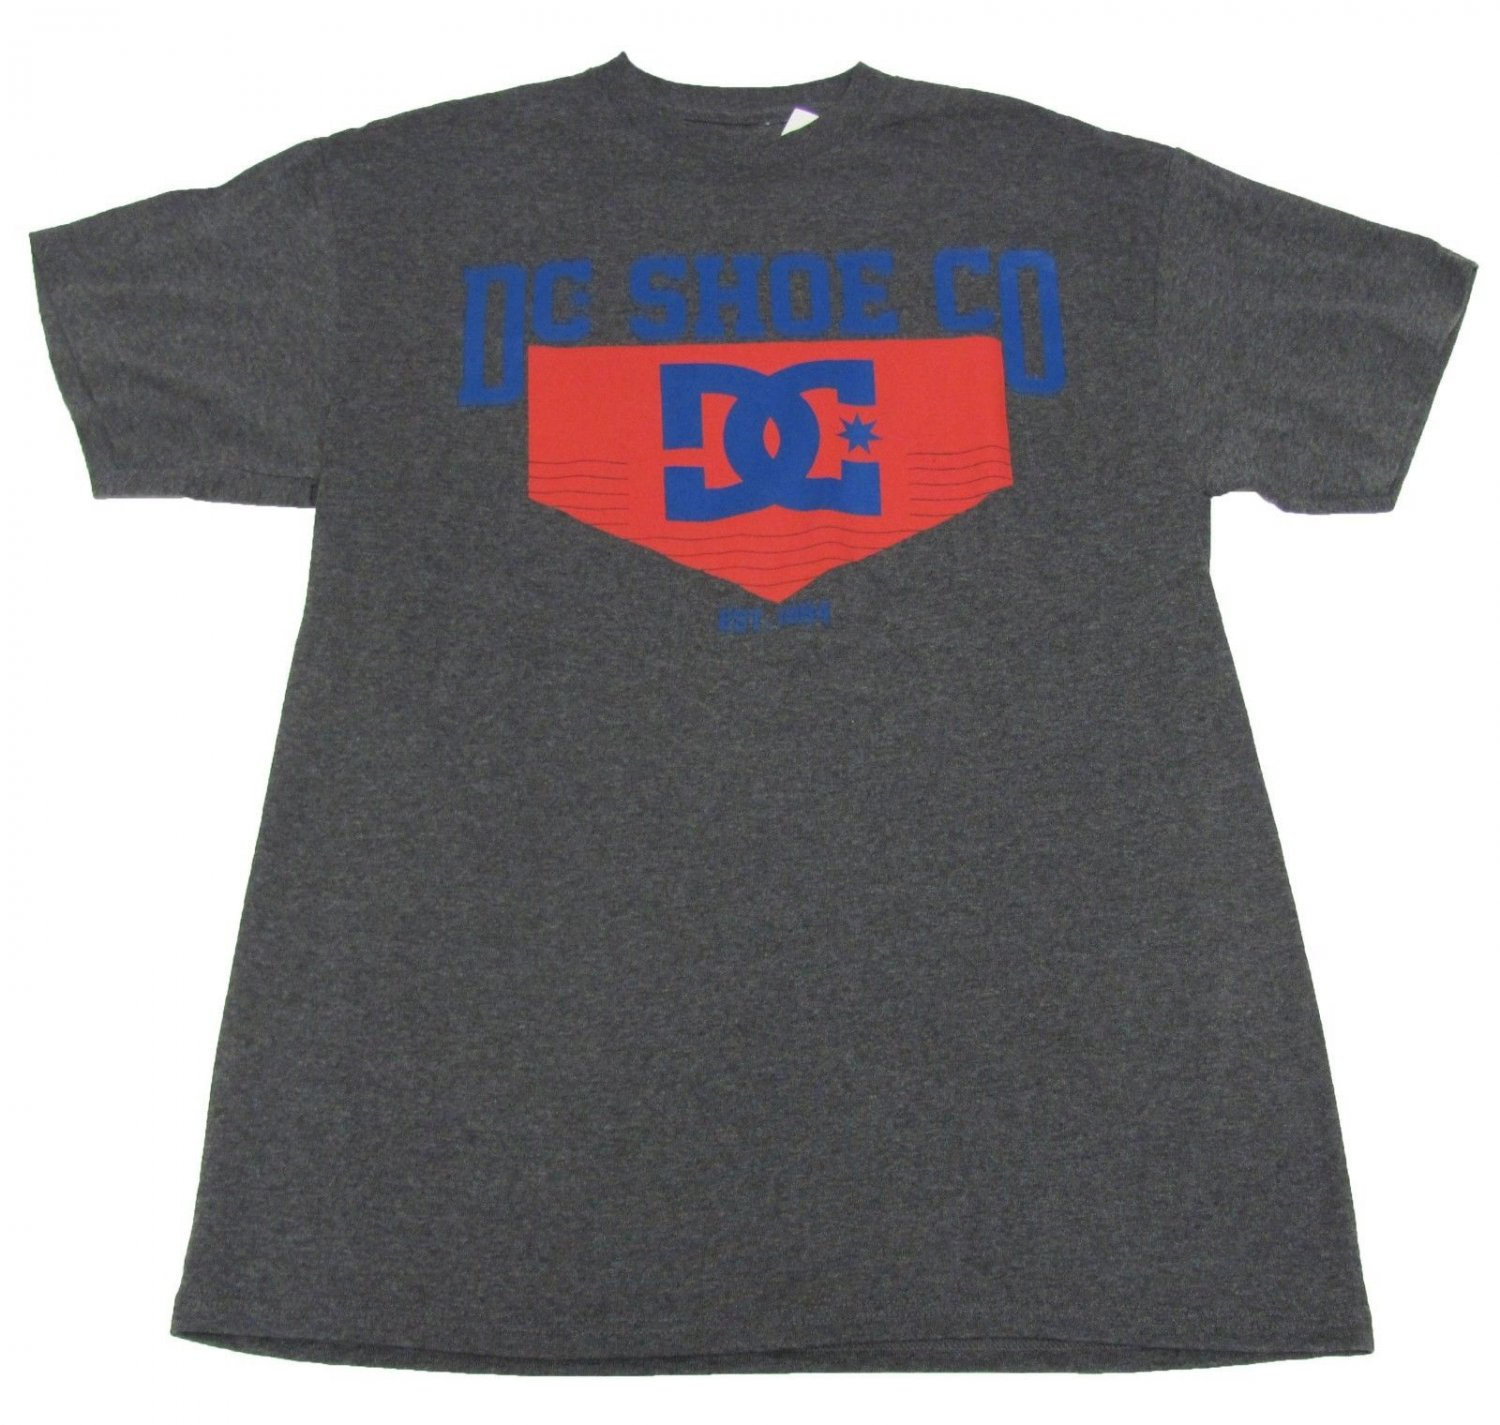 DC Shoes Mens S Starship Tee Shirt Charcoal Gray Red Blue T-shirt Small New